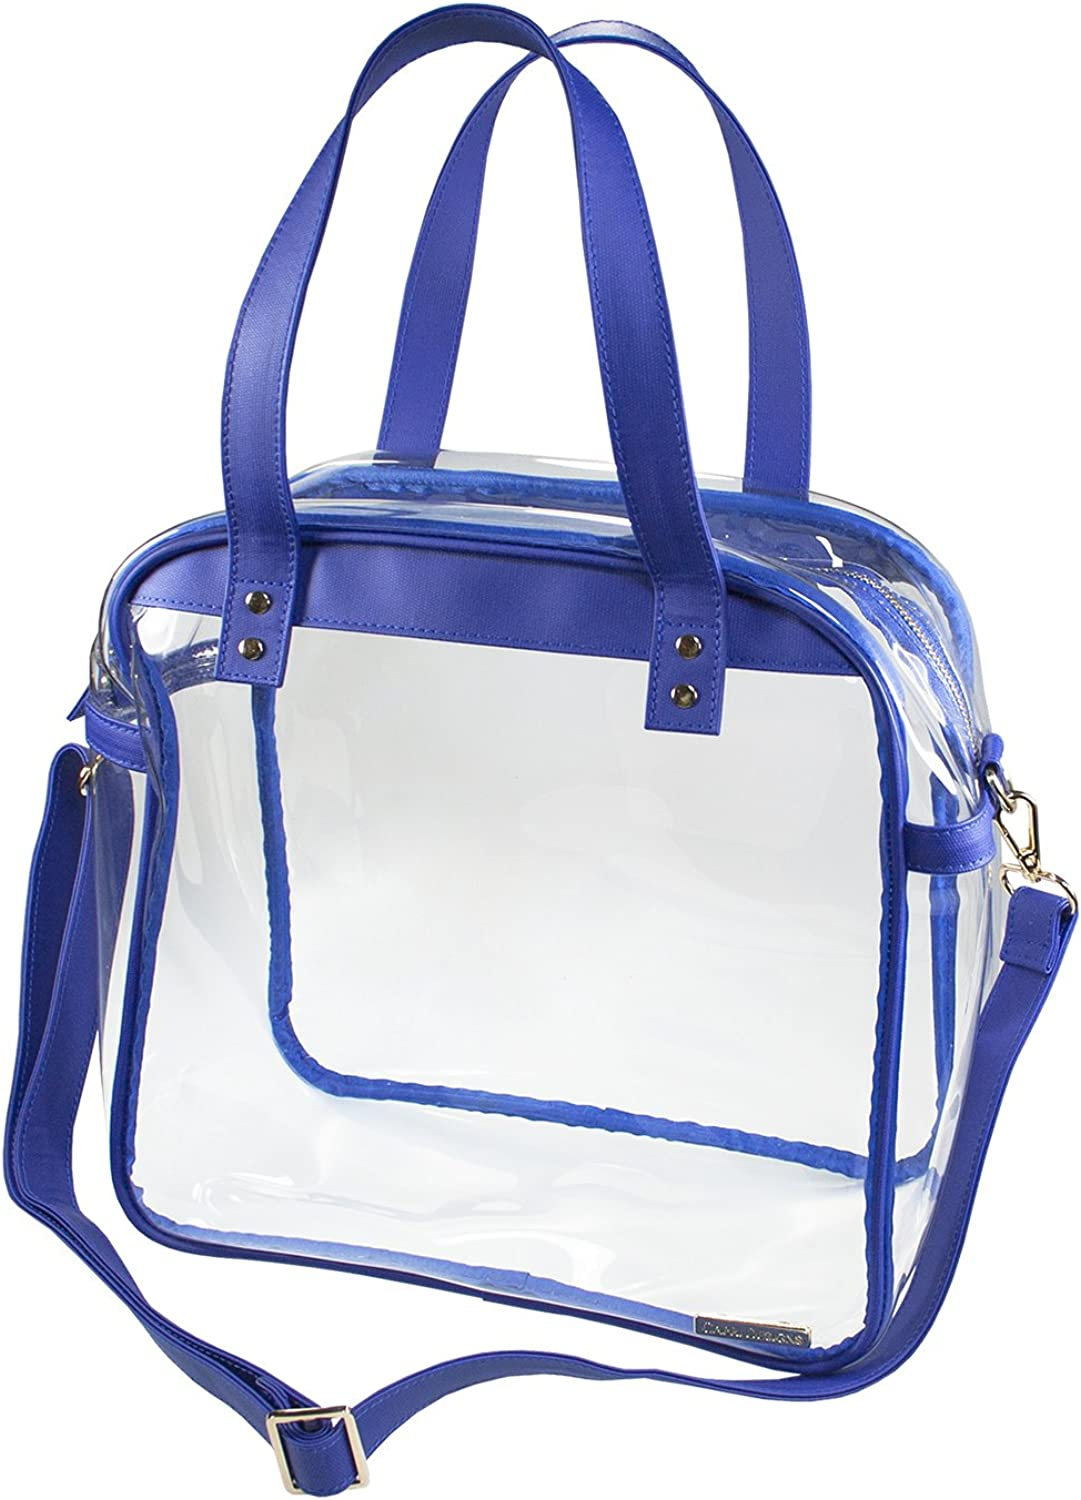 Capri Designs Clearly Fashion Stadium Collection Clear Carryall Tote Bag Meets Stadium Requirements